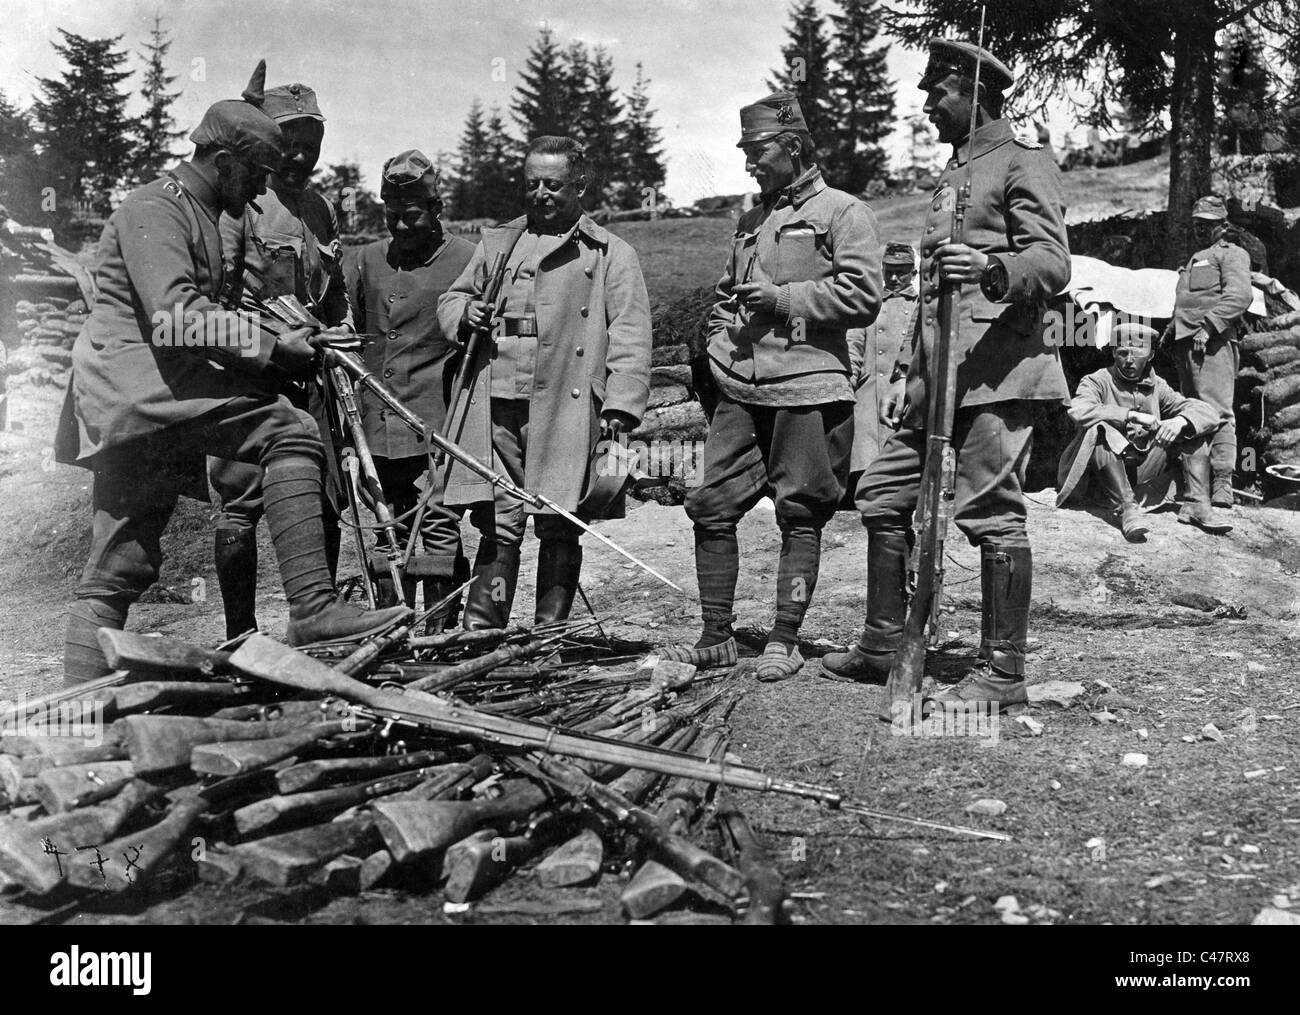 Examining captured Russian weapons, 1915 - Stock Image